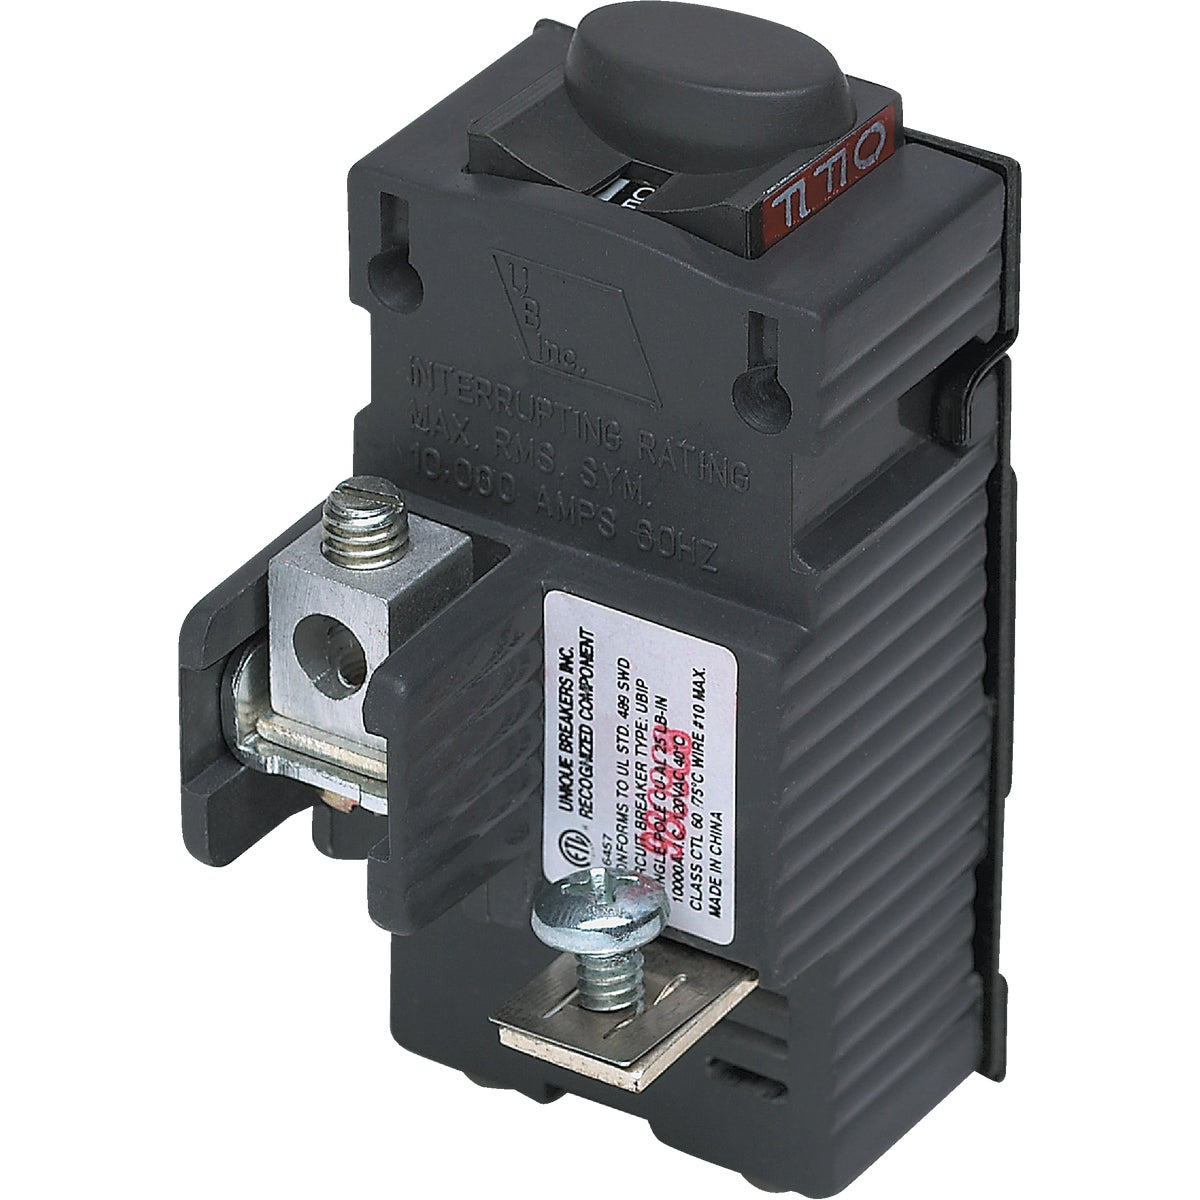 15A SP CIRCUIT BREAKER - UBIP115 by Connecticut Electric